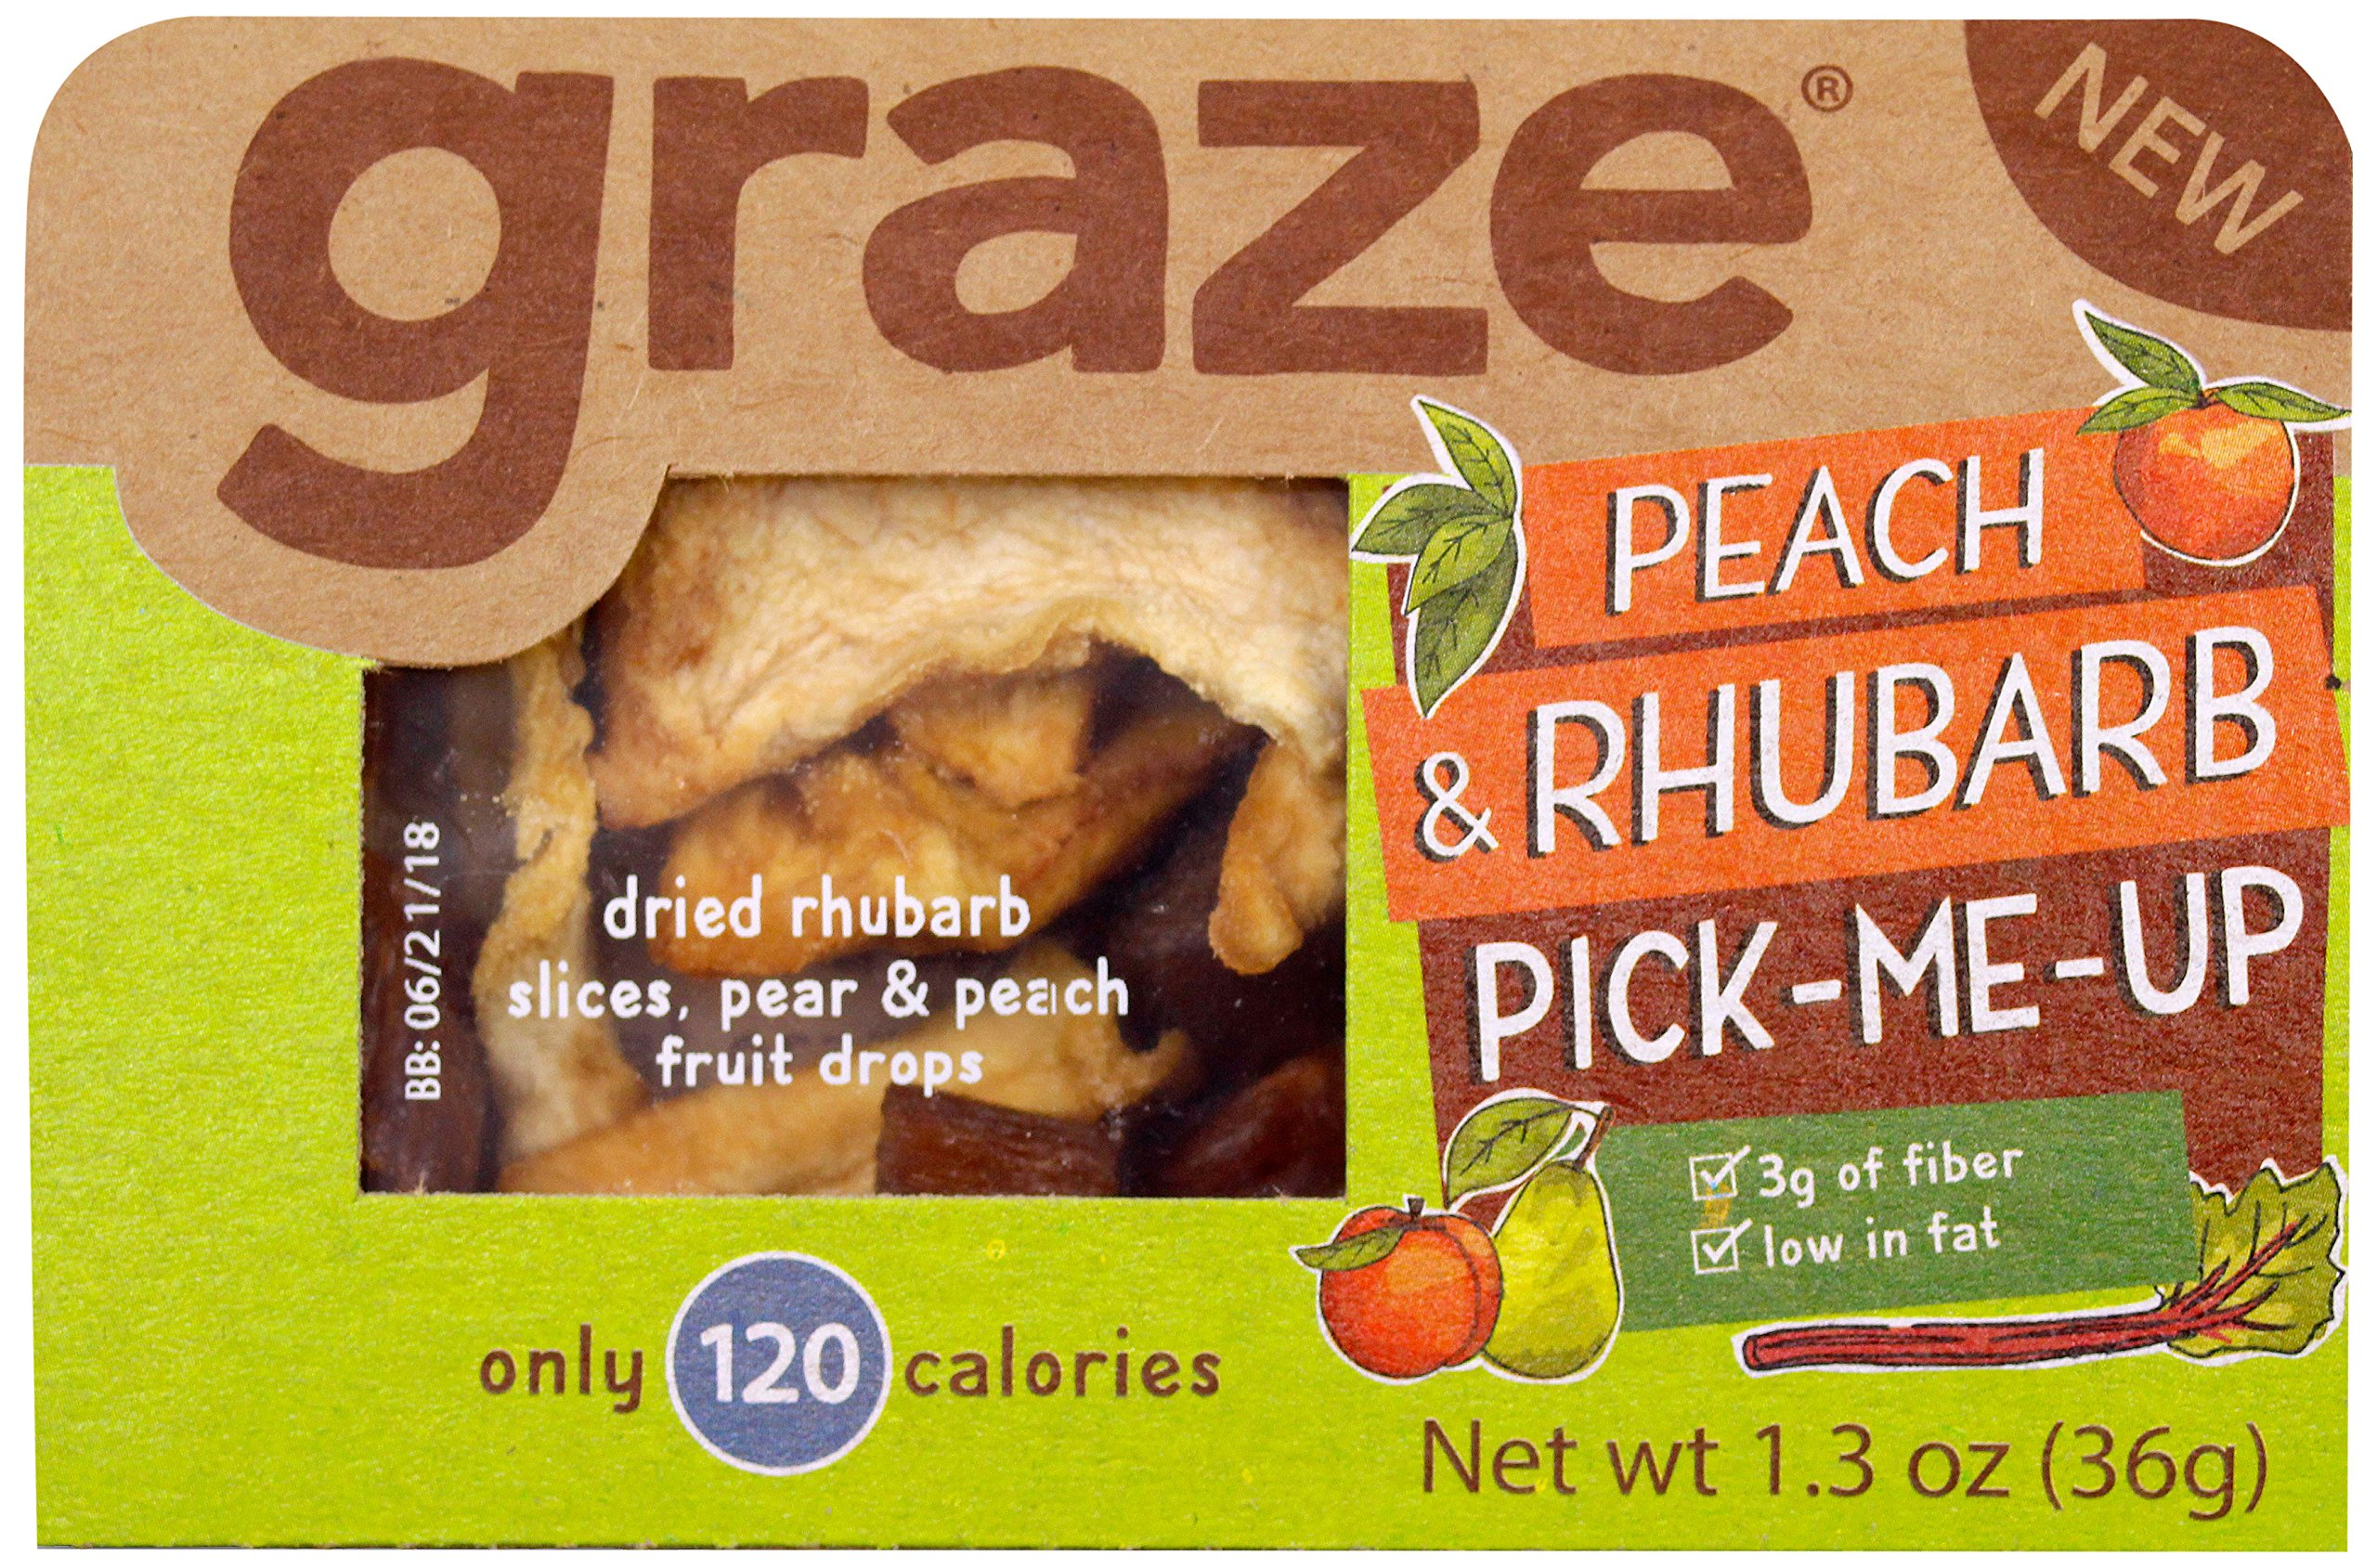 Graze Natural Peach and Rhubarb Pick-Me-Up Snack, with Rhubarb Slices, Pear and Peach Fruit Drops, Healthy, Natural Dried Fruits Trail Mix, 1.3 Ounce Box, 9 Pack by Graze